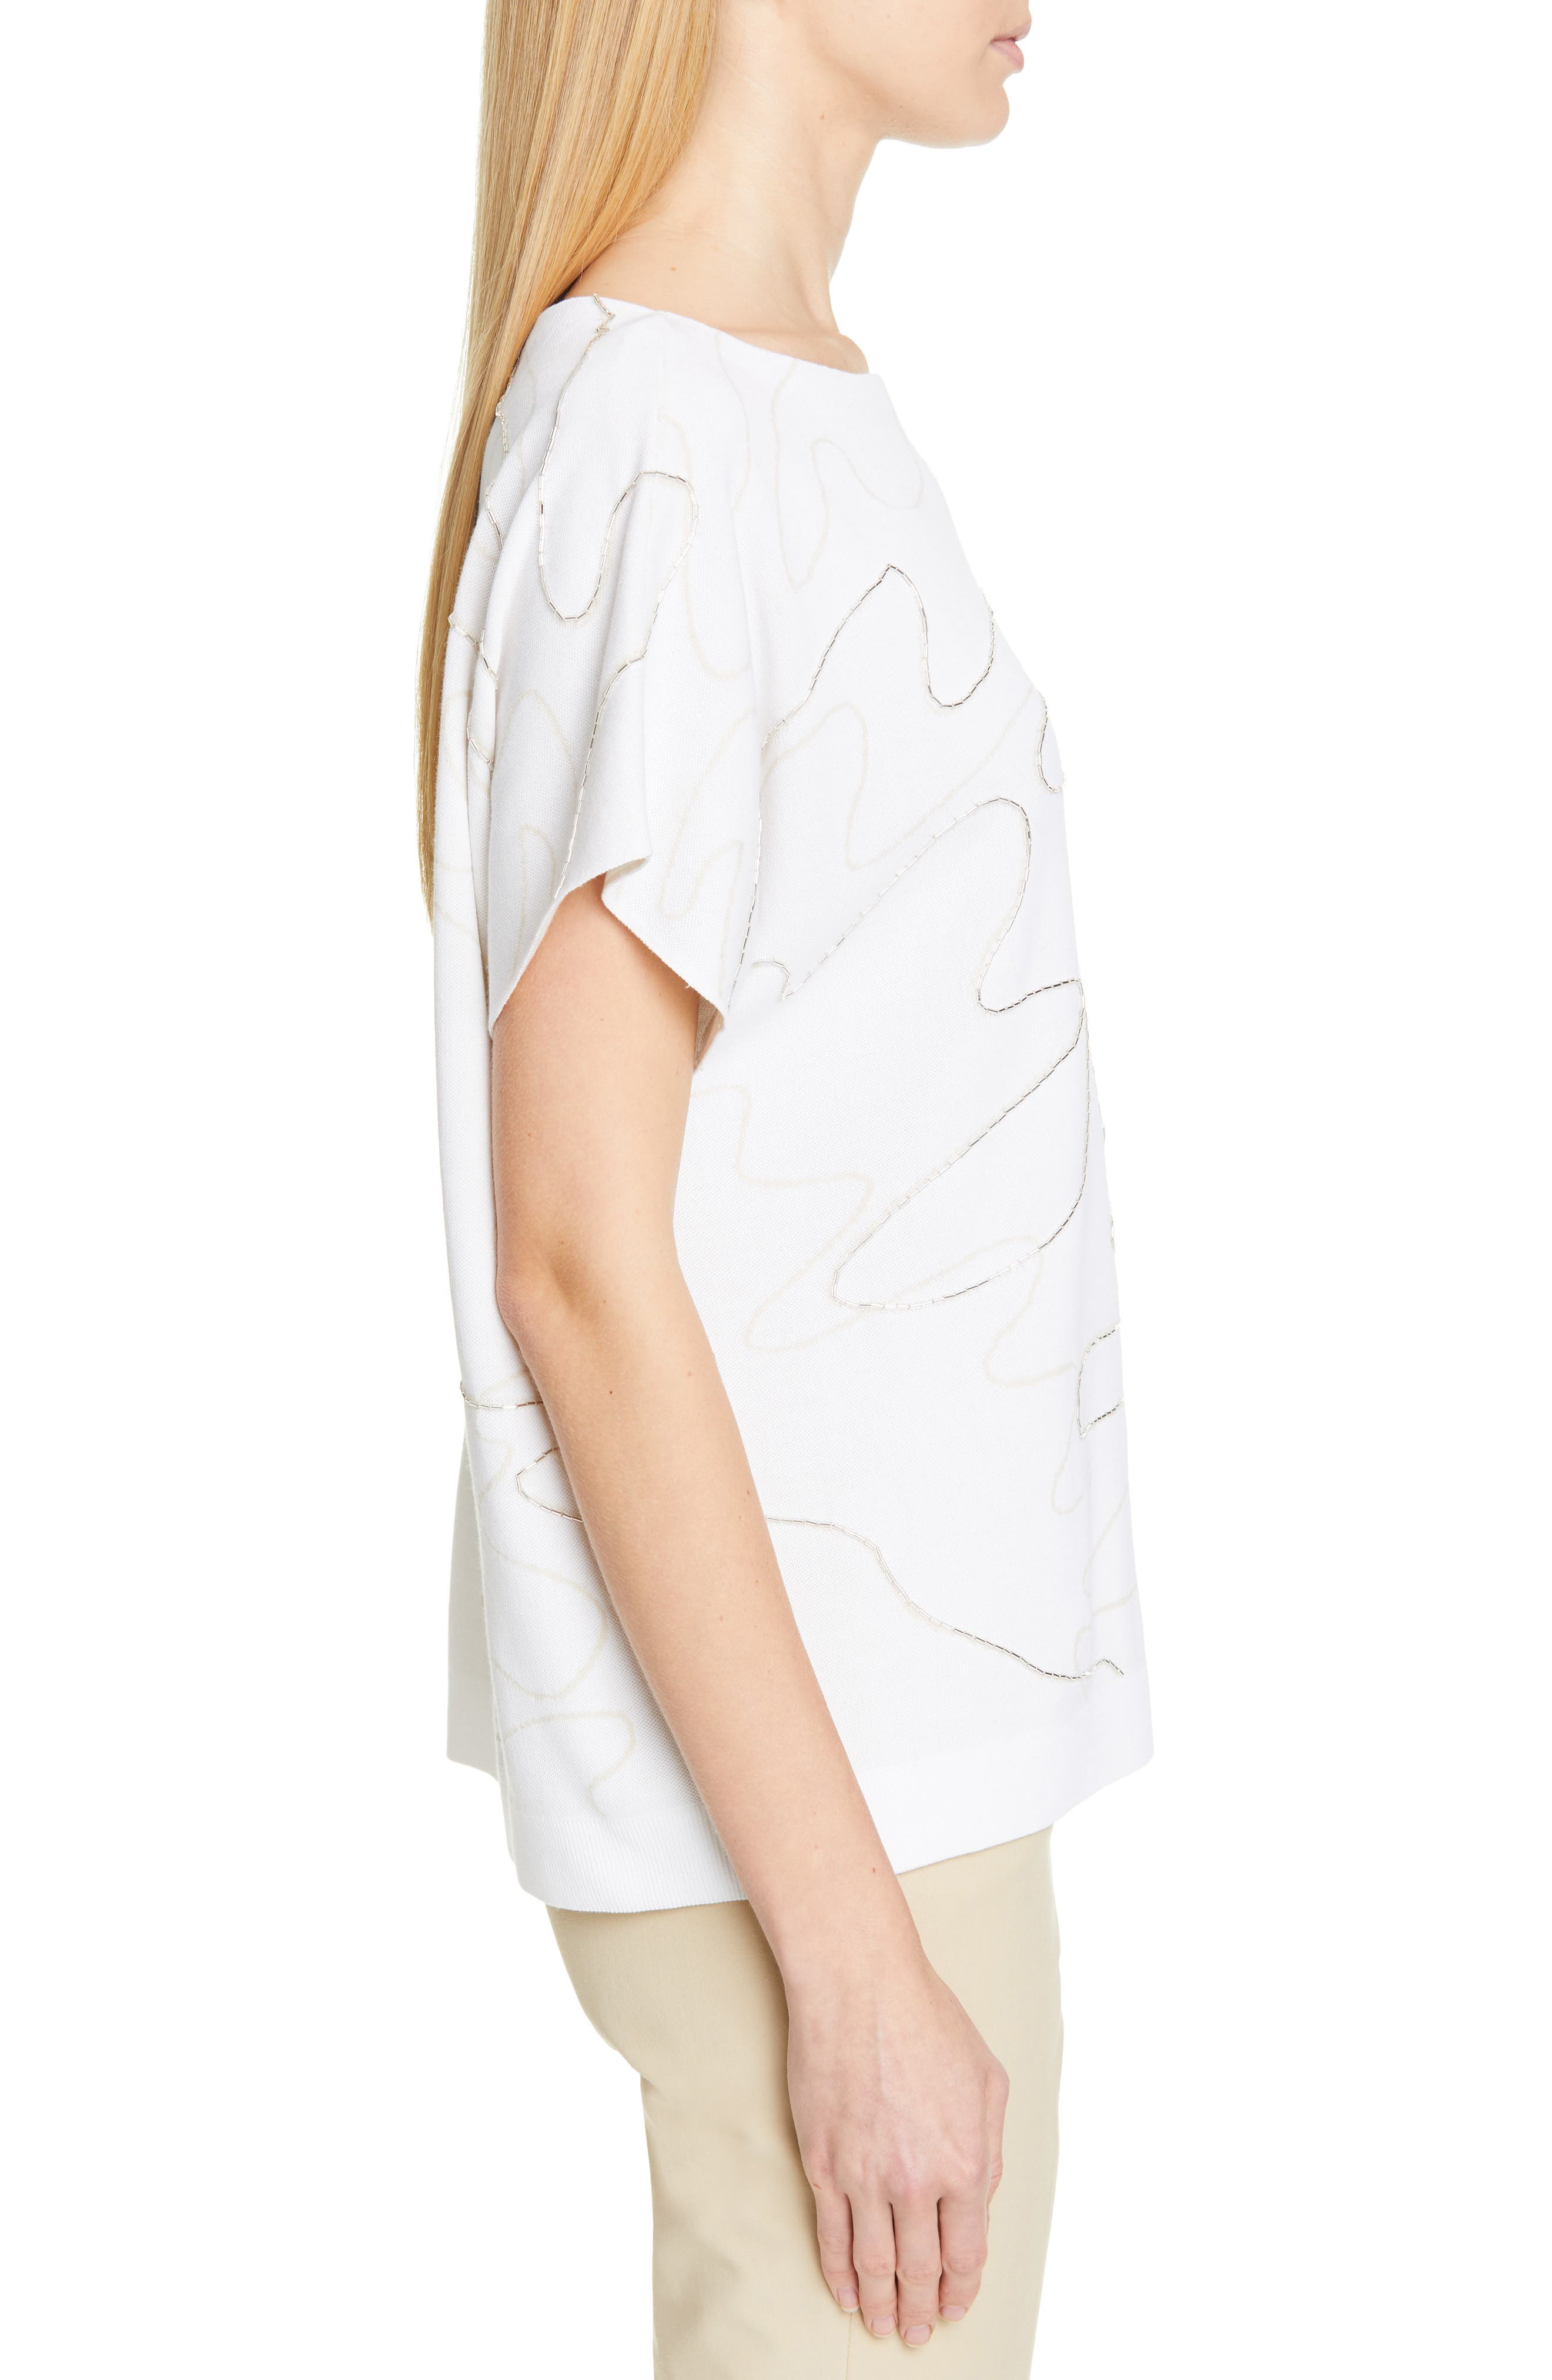 LAFAYETTE 148 NEW YORK, Beaded Double Jacquard Sweater, Alternate thumbnail 3, color, WHITE/ RAFFIA